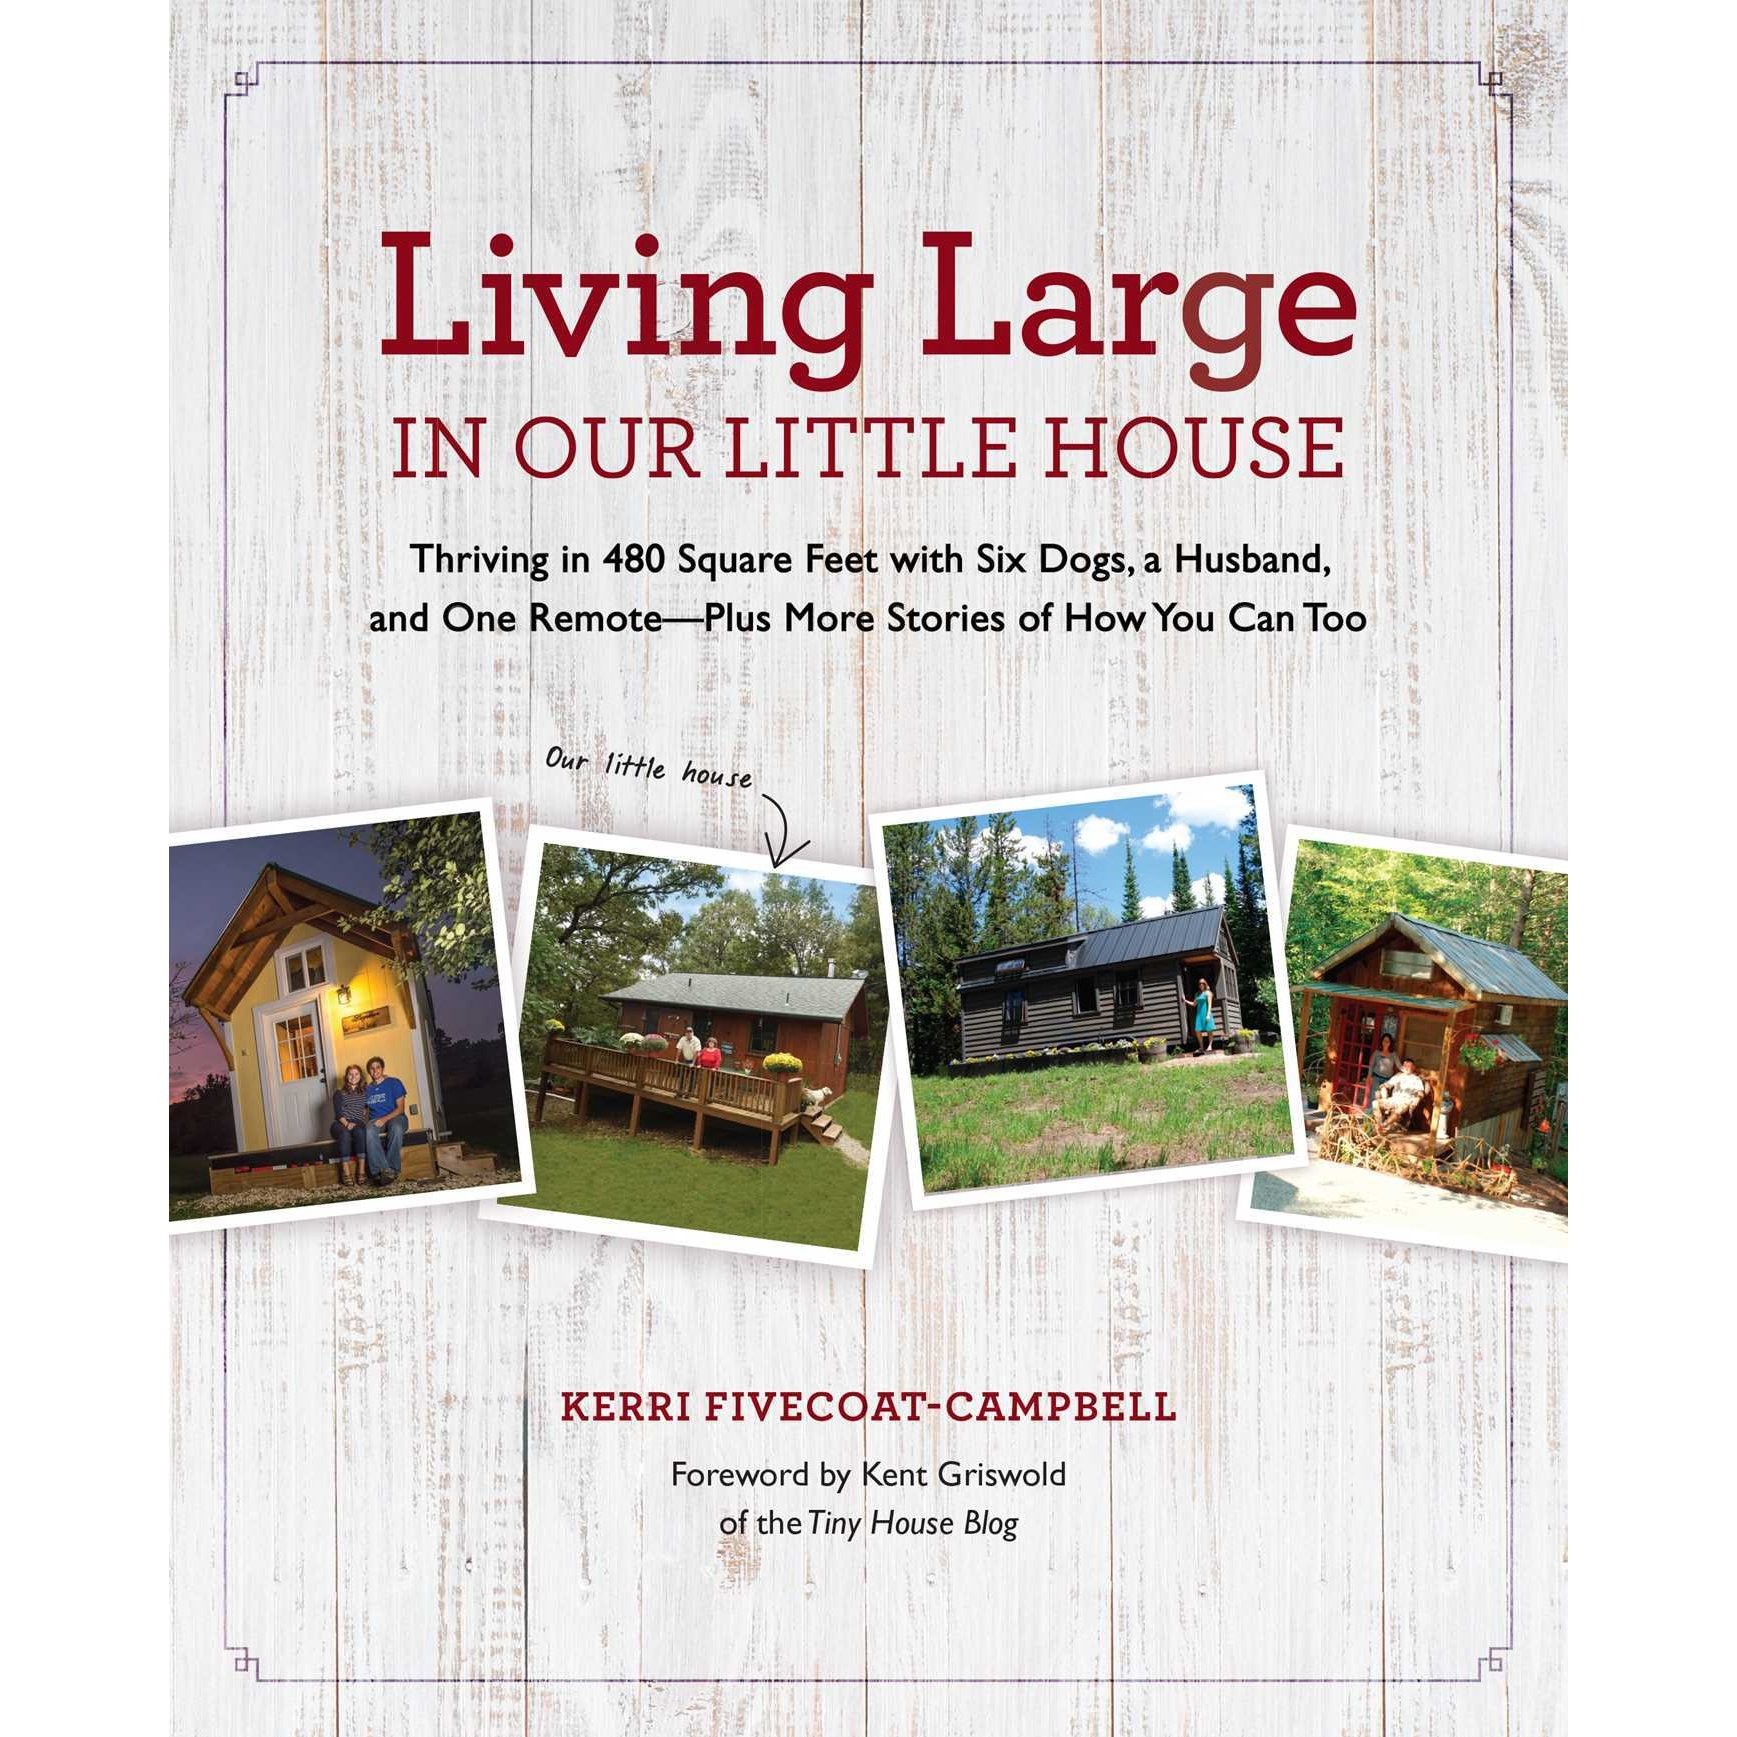 Living Large in Our Little House cover image